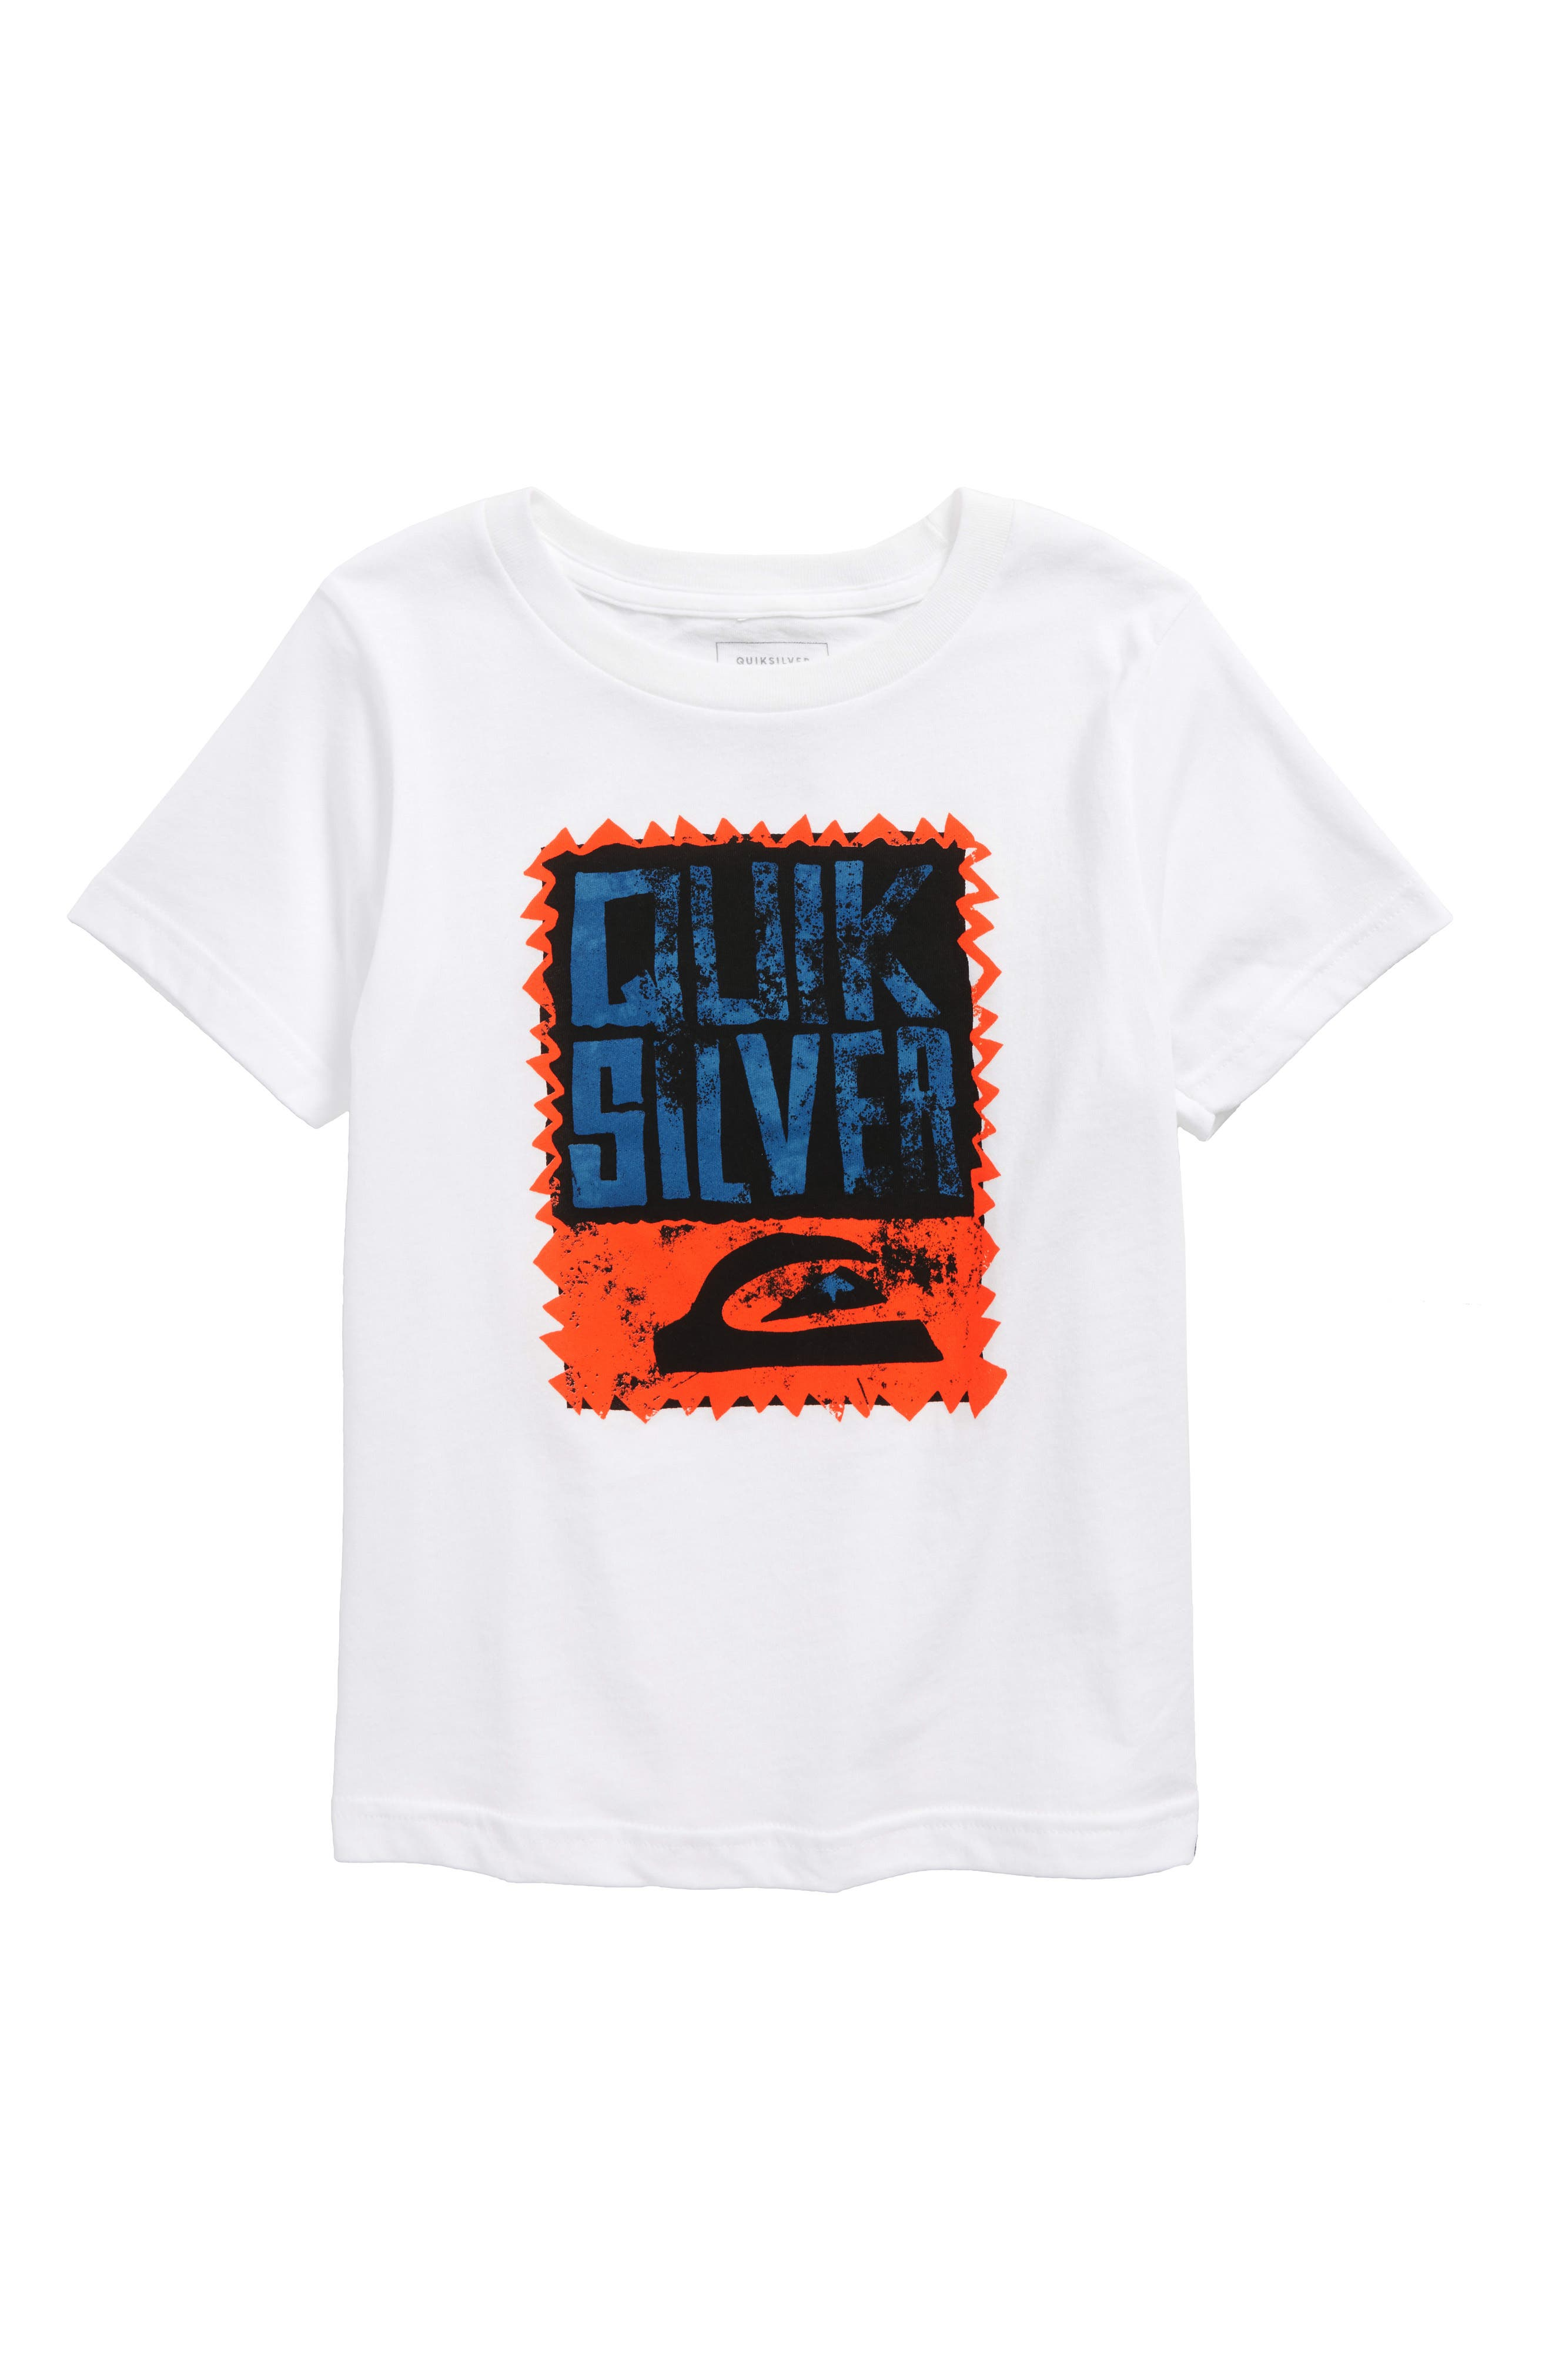 Awaken The Vibe Graphic T-Shirt,                         Main,                         color, White